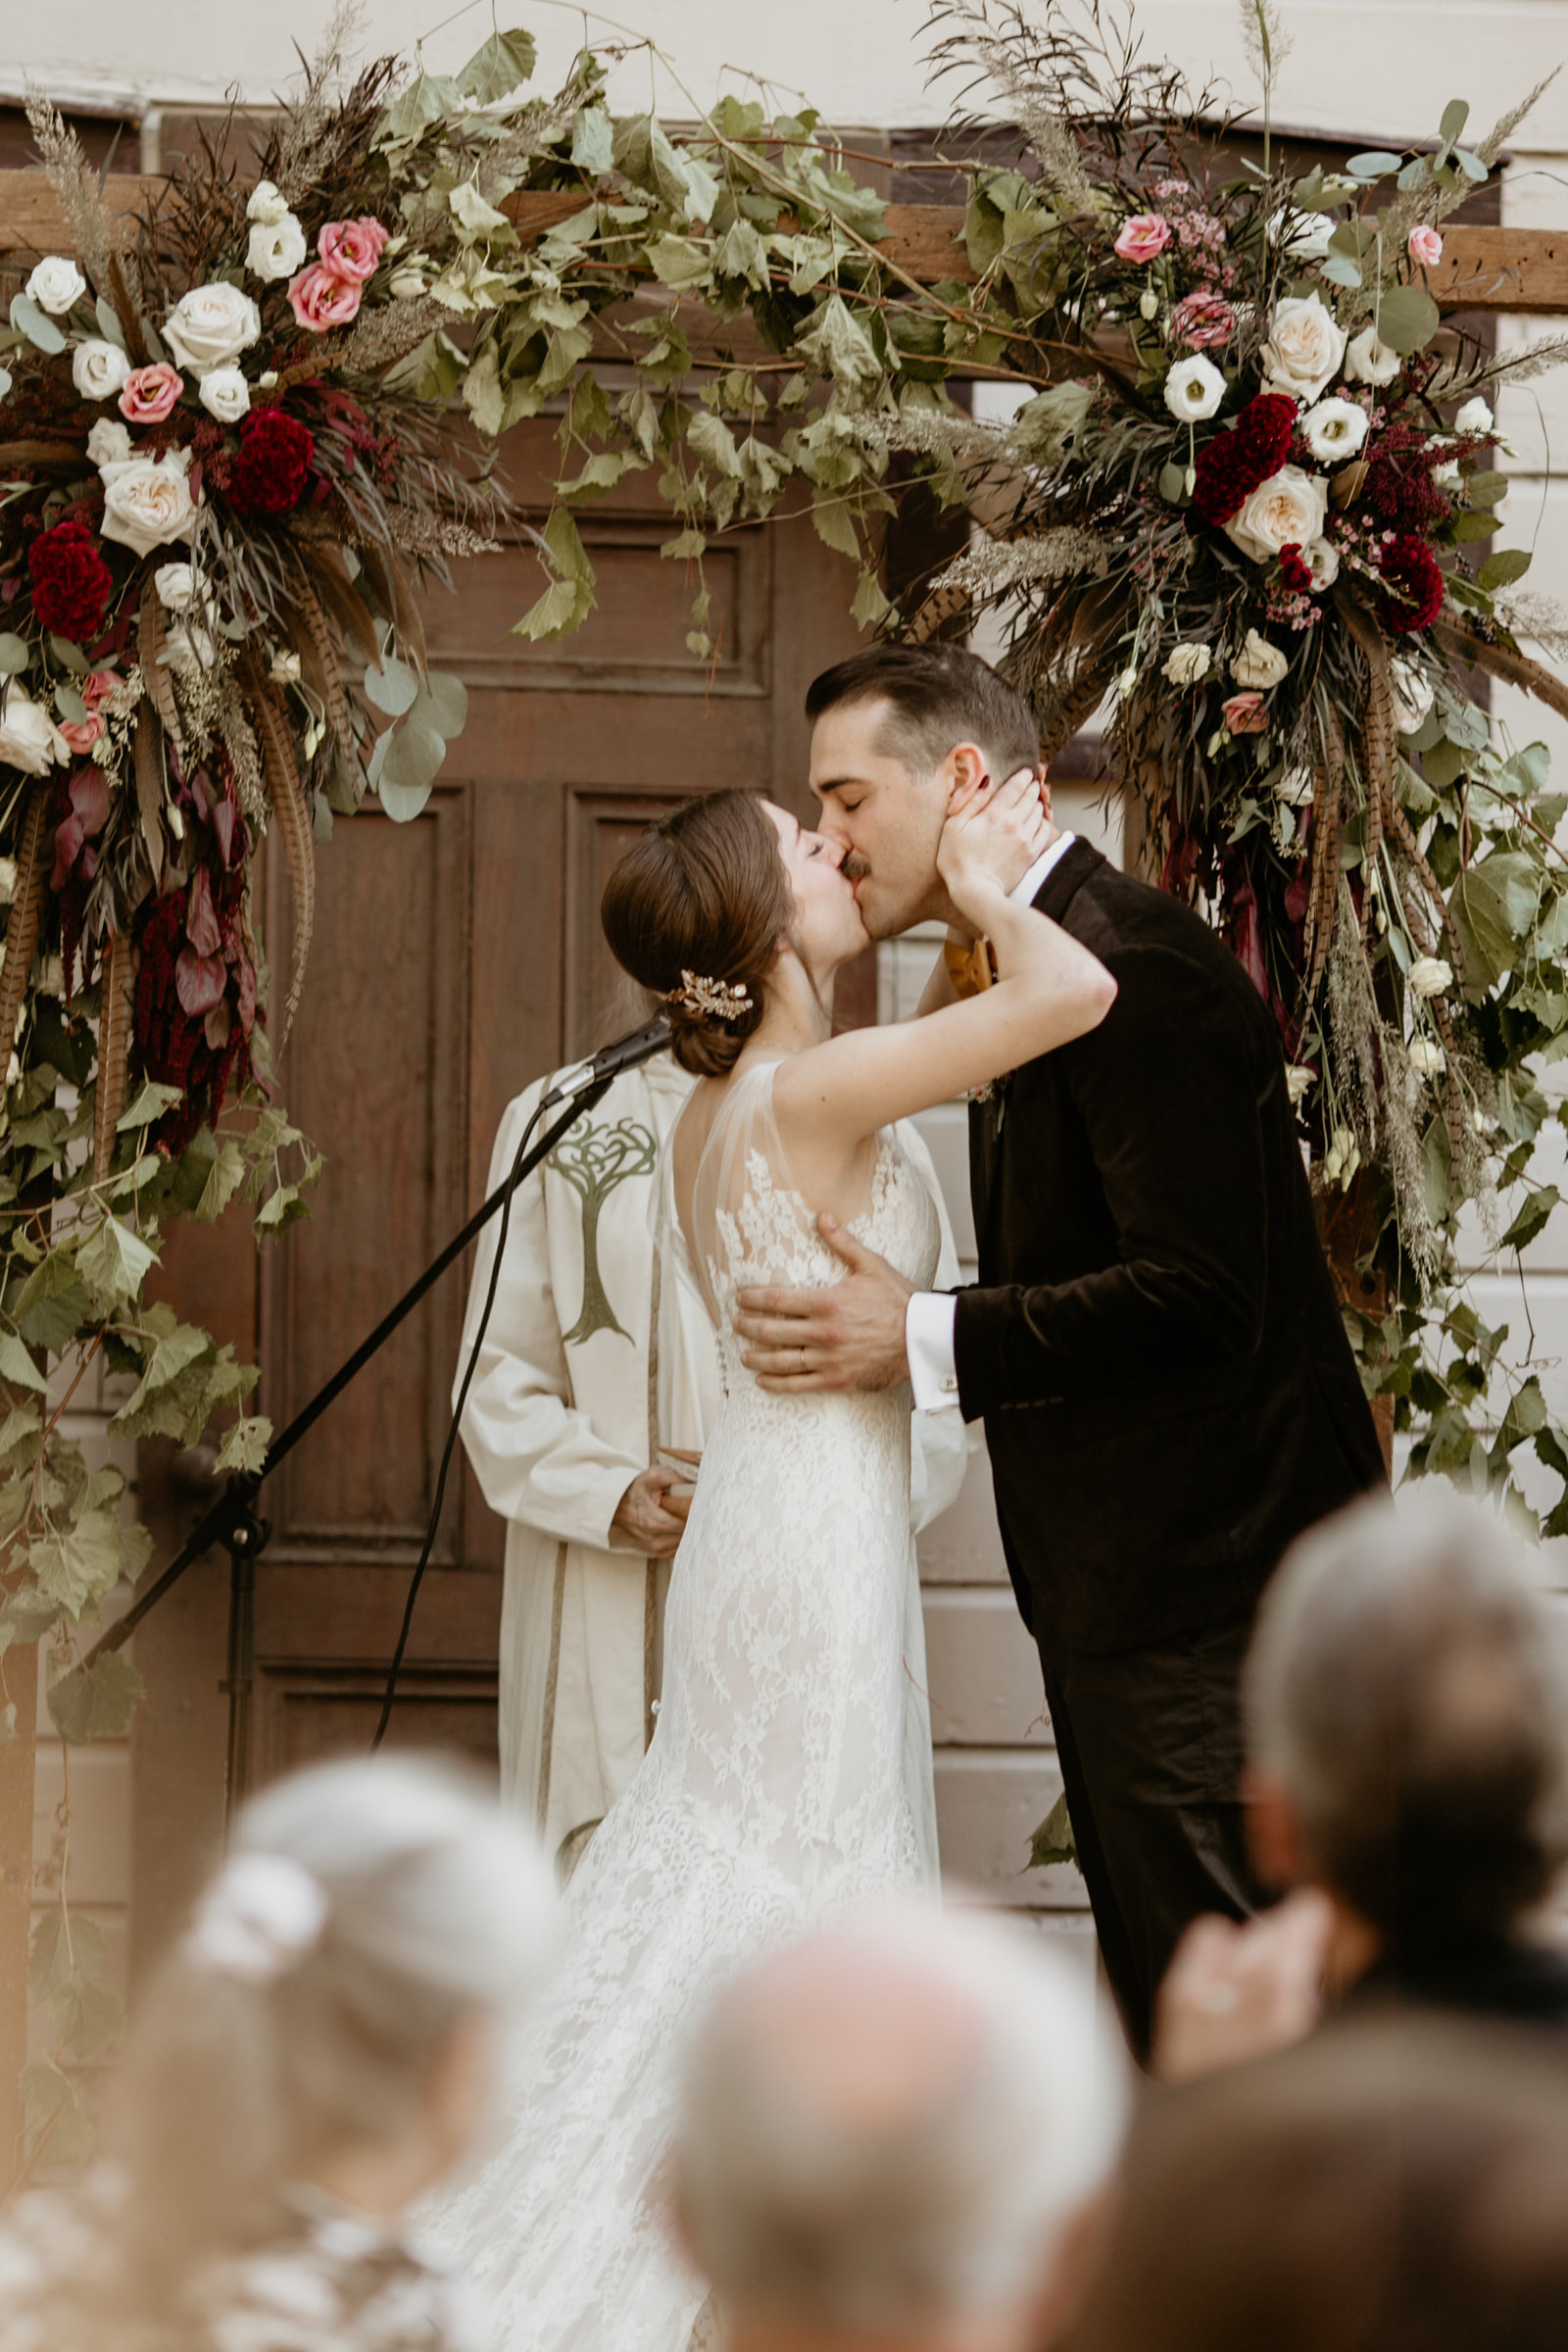 Bride and groom's first kiss as husband and wife.